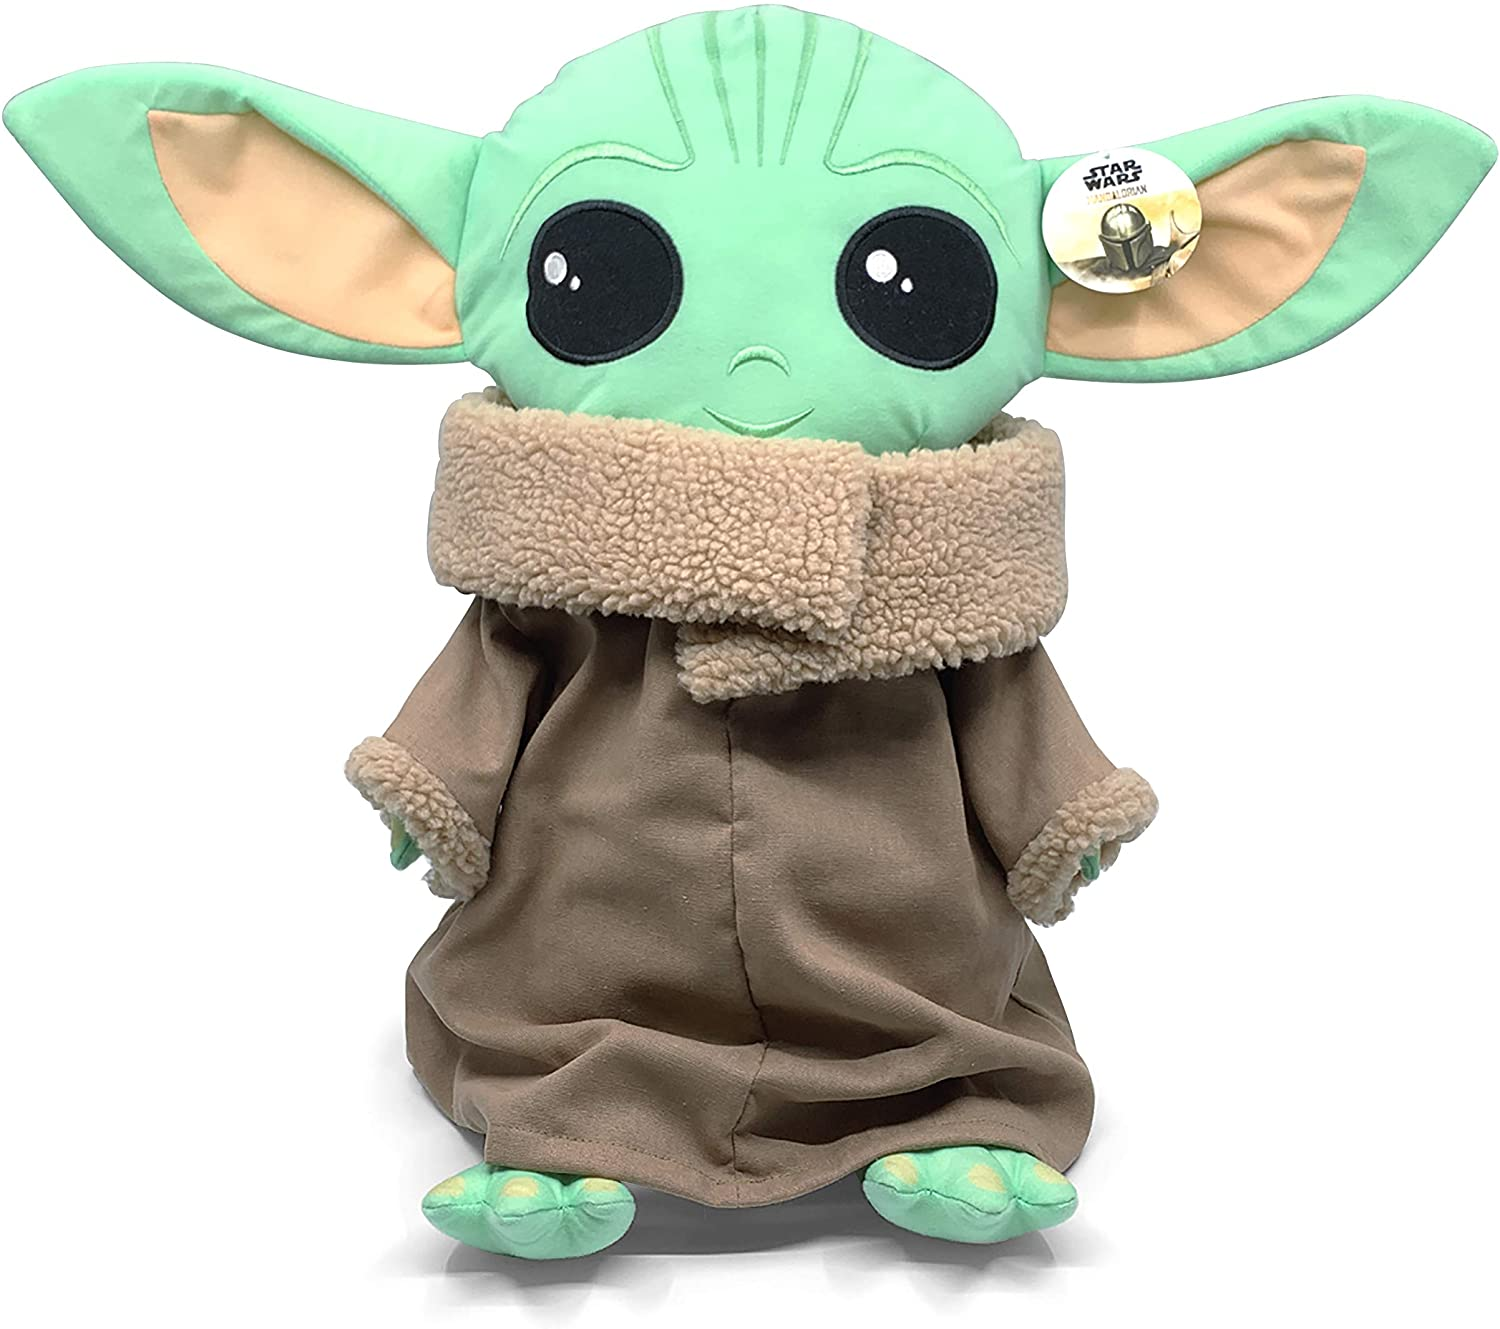 Amazon Com Plush Star Wars The Mandalorian Baby Yoda Pillow Toys Games